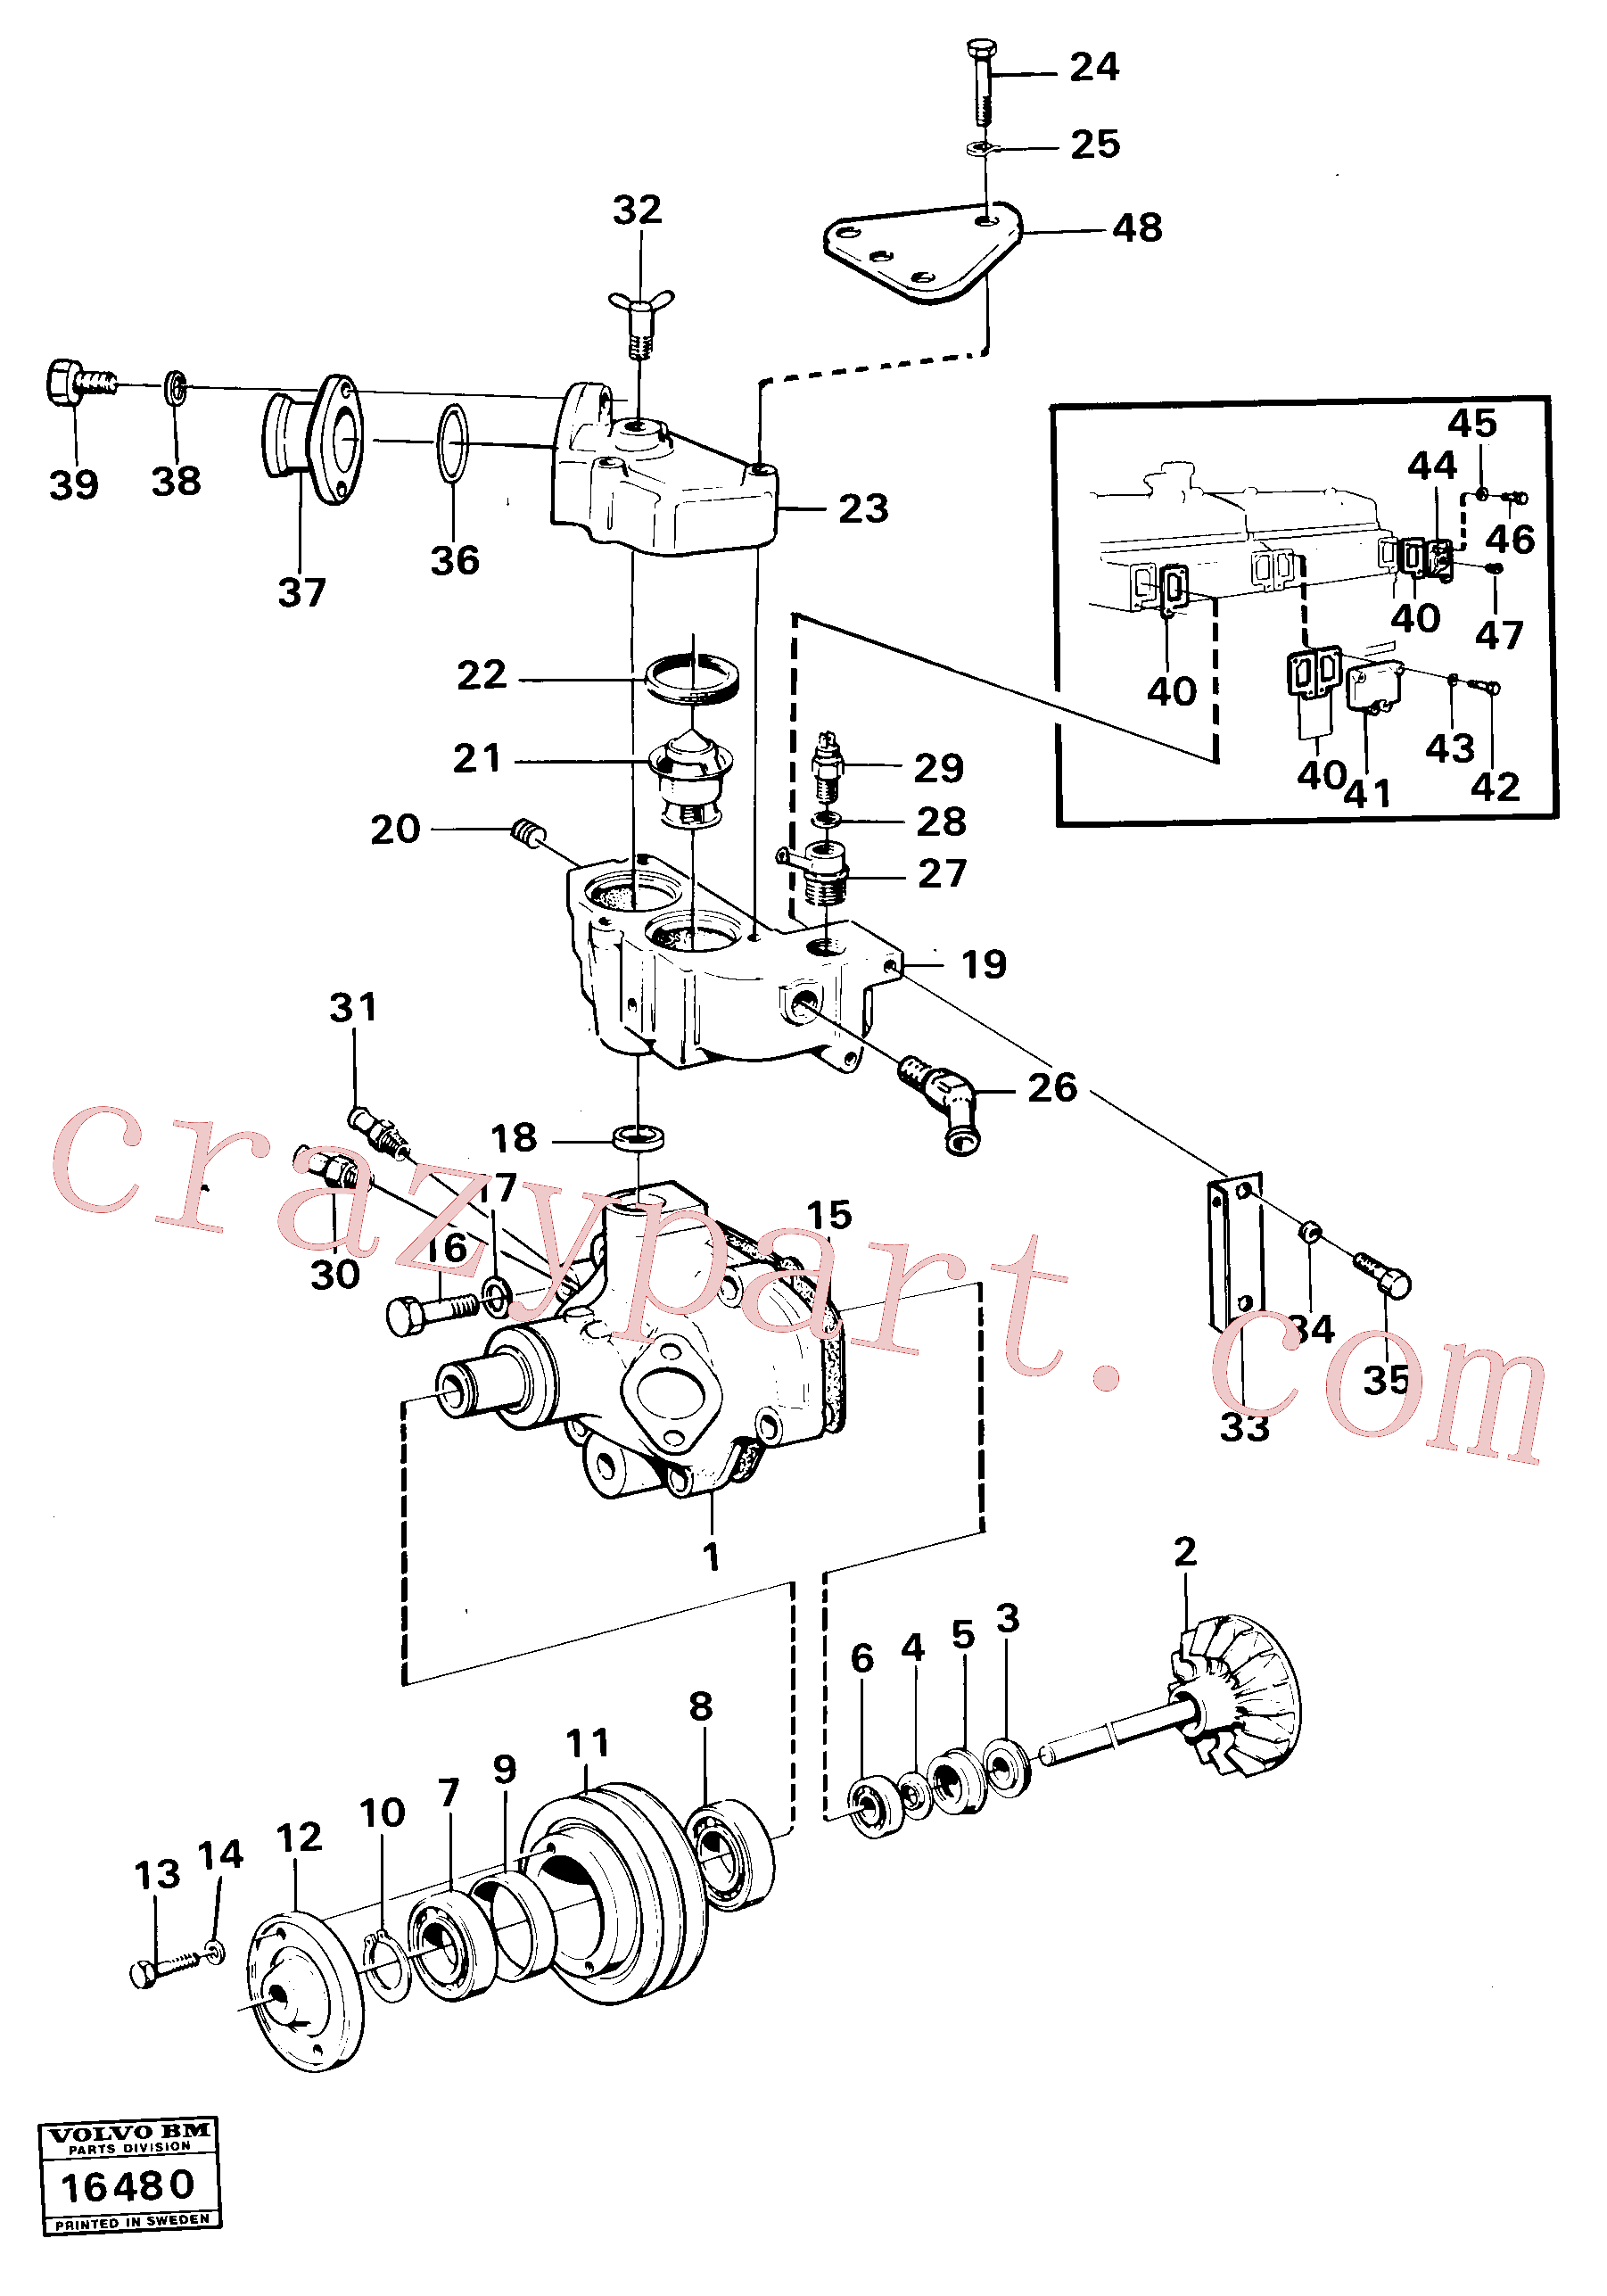 VOE940156 for Volvo Water pump with fitting parts, Water pump with fitting parts.(16480 assembly)